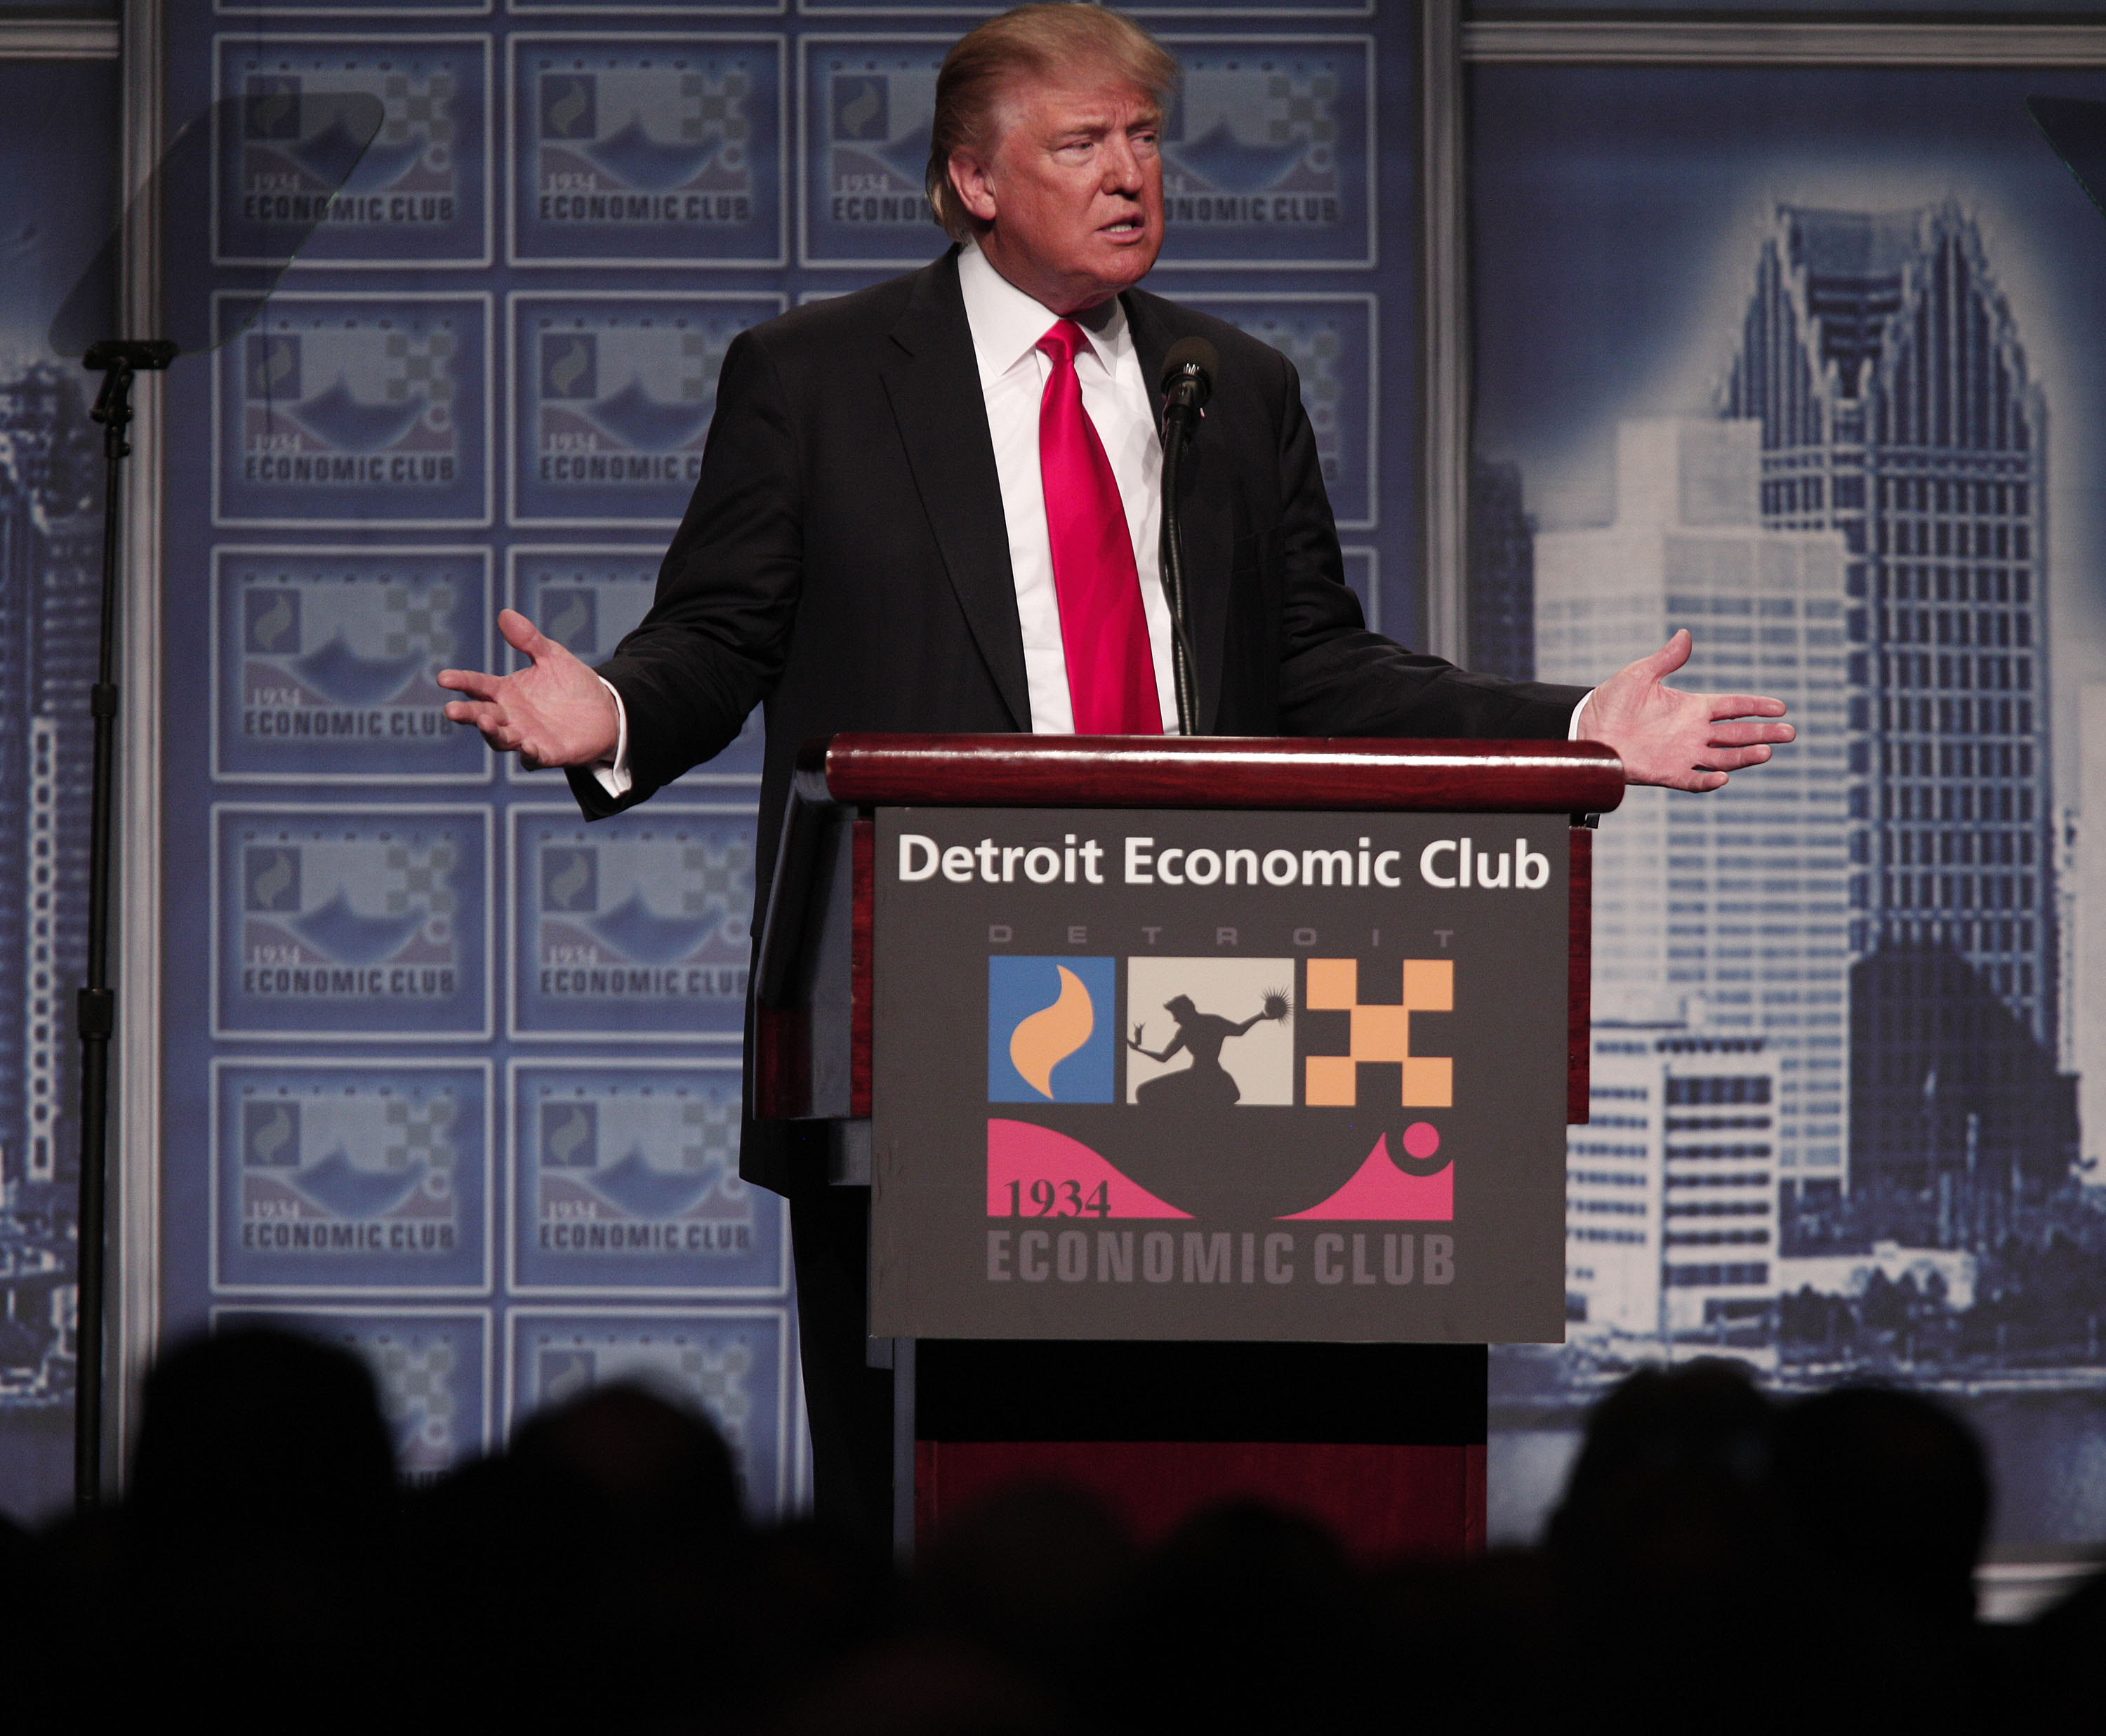 Republican presidential candidate Donald Trump delivers an economic policy address detailing his economic plan at the Detroit Economic Club in Detroit on Aug. 8, 2016.